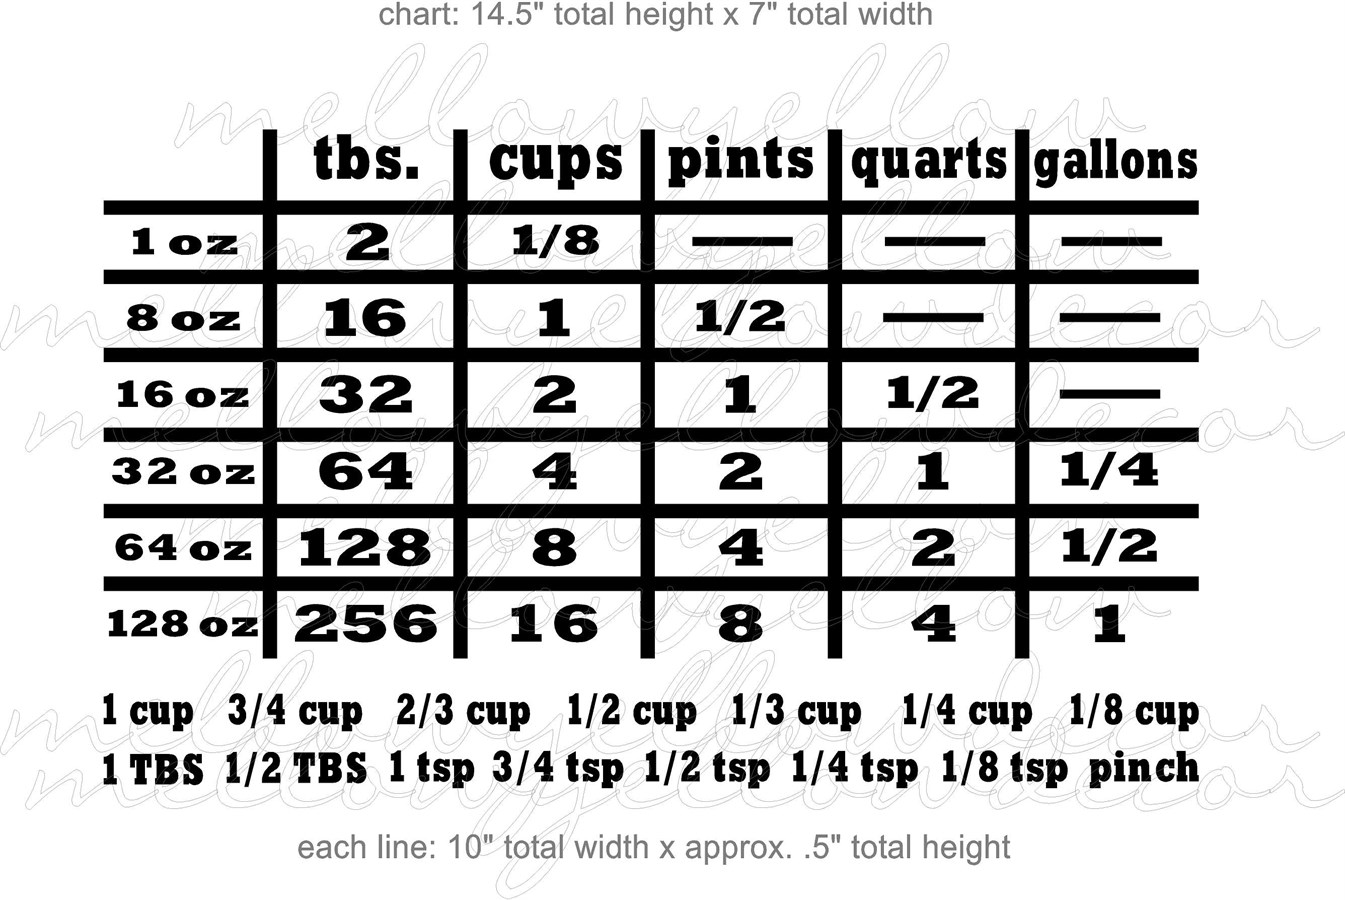 Pint conversion chart images free any chart examples stunning gallon man template contemporary professional resume pint conversion chart images free any chart examples nvjuhfo nvjuhfo Images